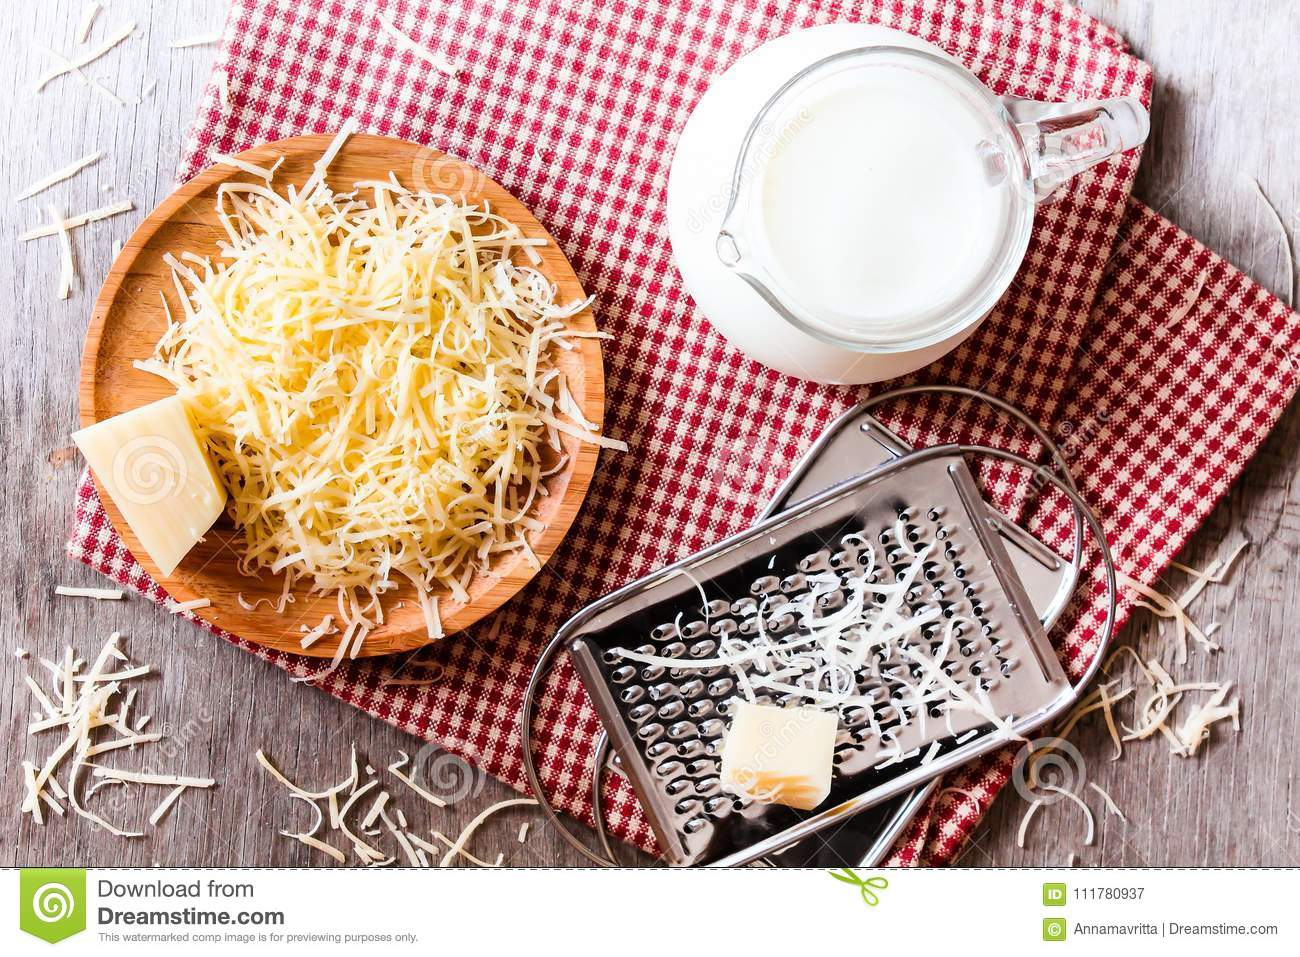 Ingredients for pasta dish or pizza - milk, freshly grated parmesan cheese on a wooden table, and kitchen utensils grater on a w